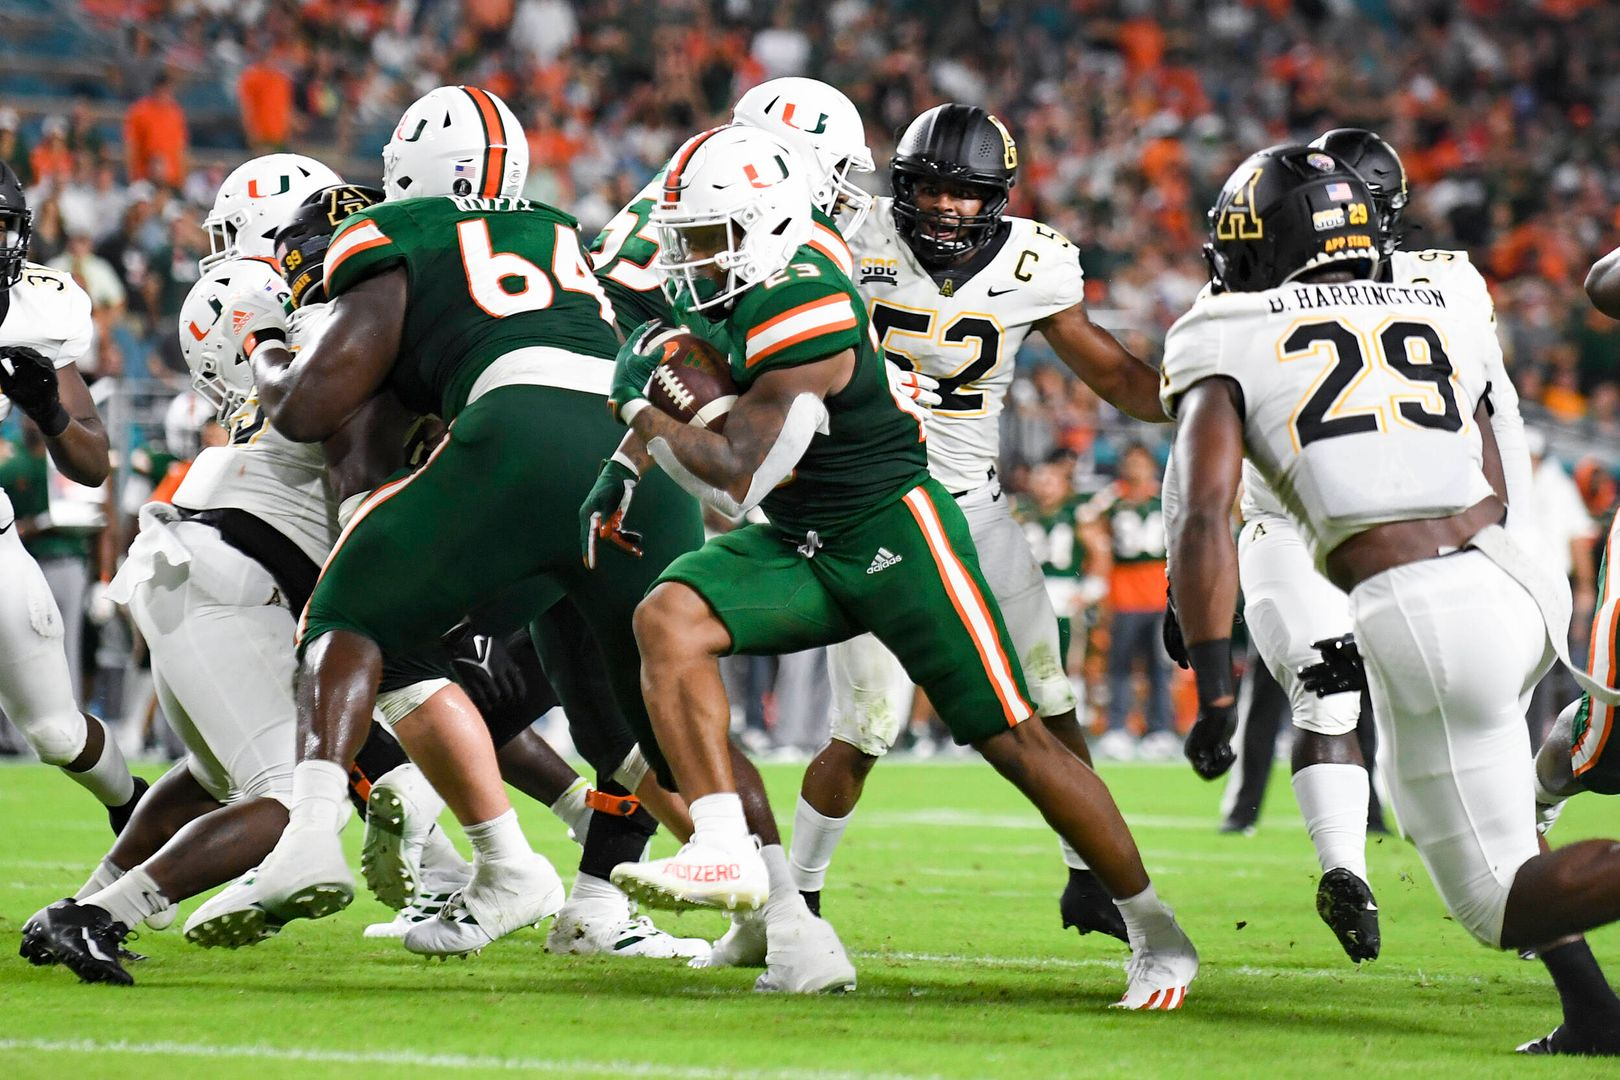 Photo Gallery: Canes Football vs App State